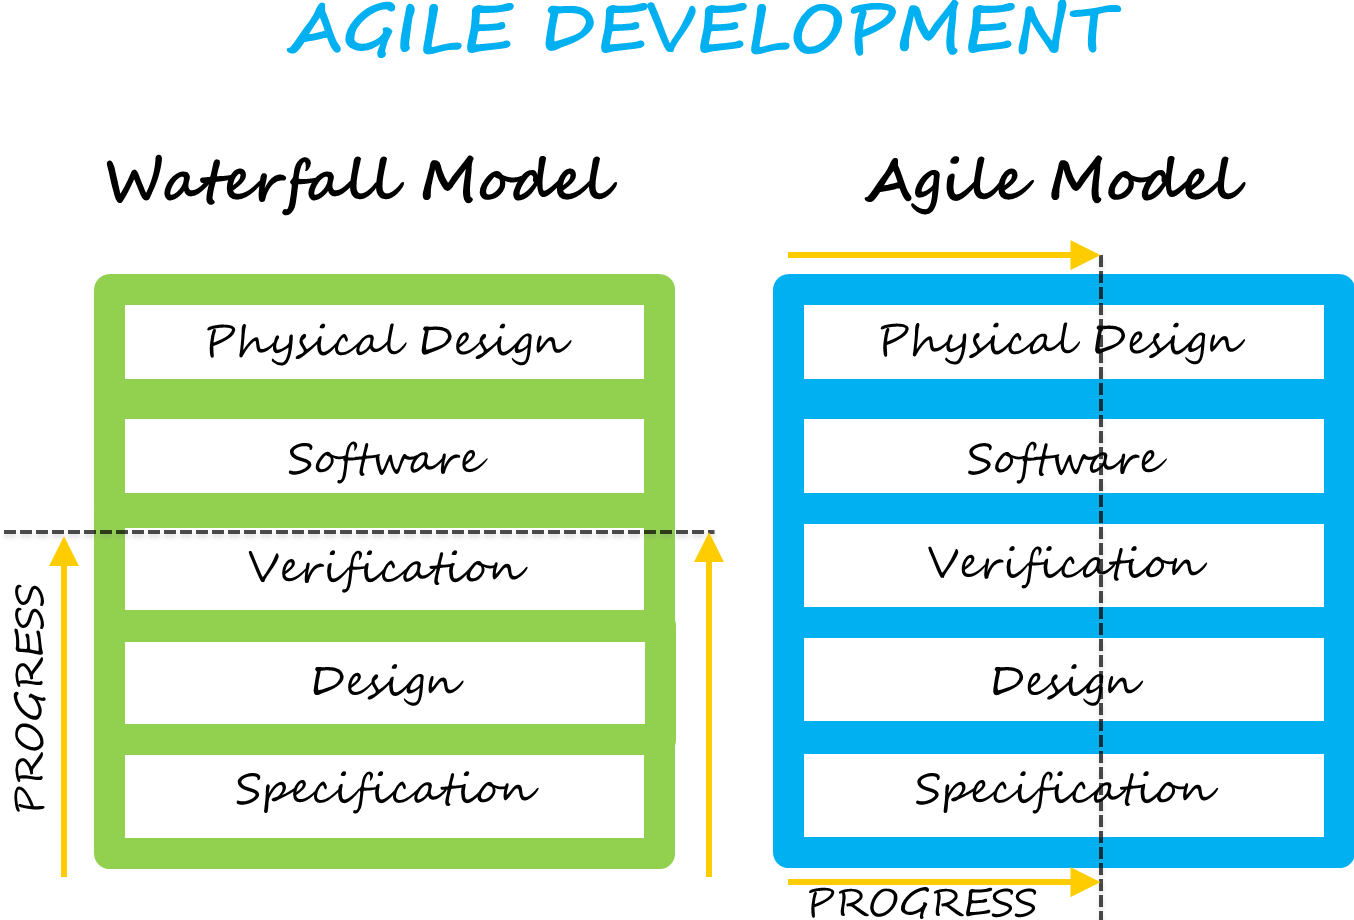 it describes agile methodologies Agile vs traditional software development methodology there are number of different software development methodologies used in the software industry today waterfall development method is one of the earliest software development methods.